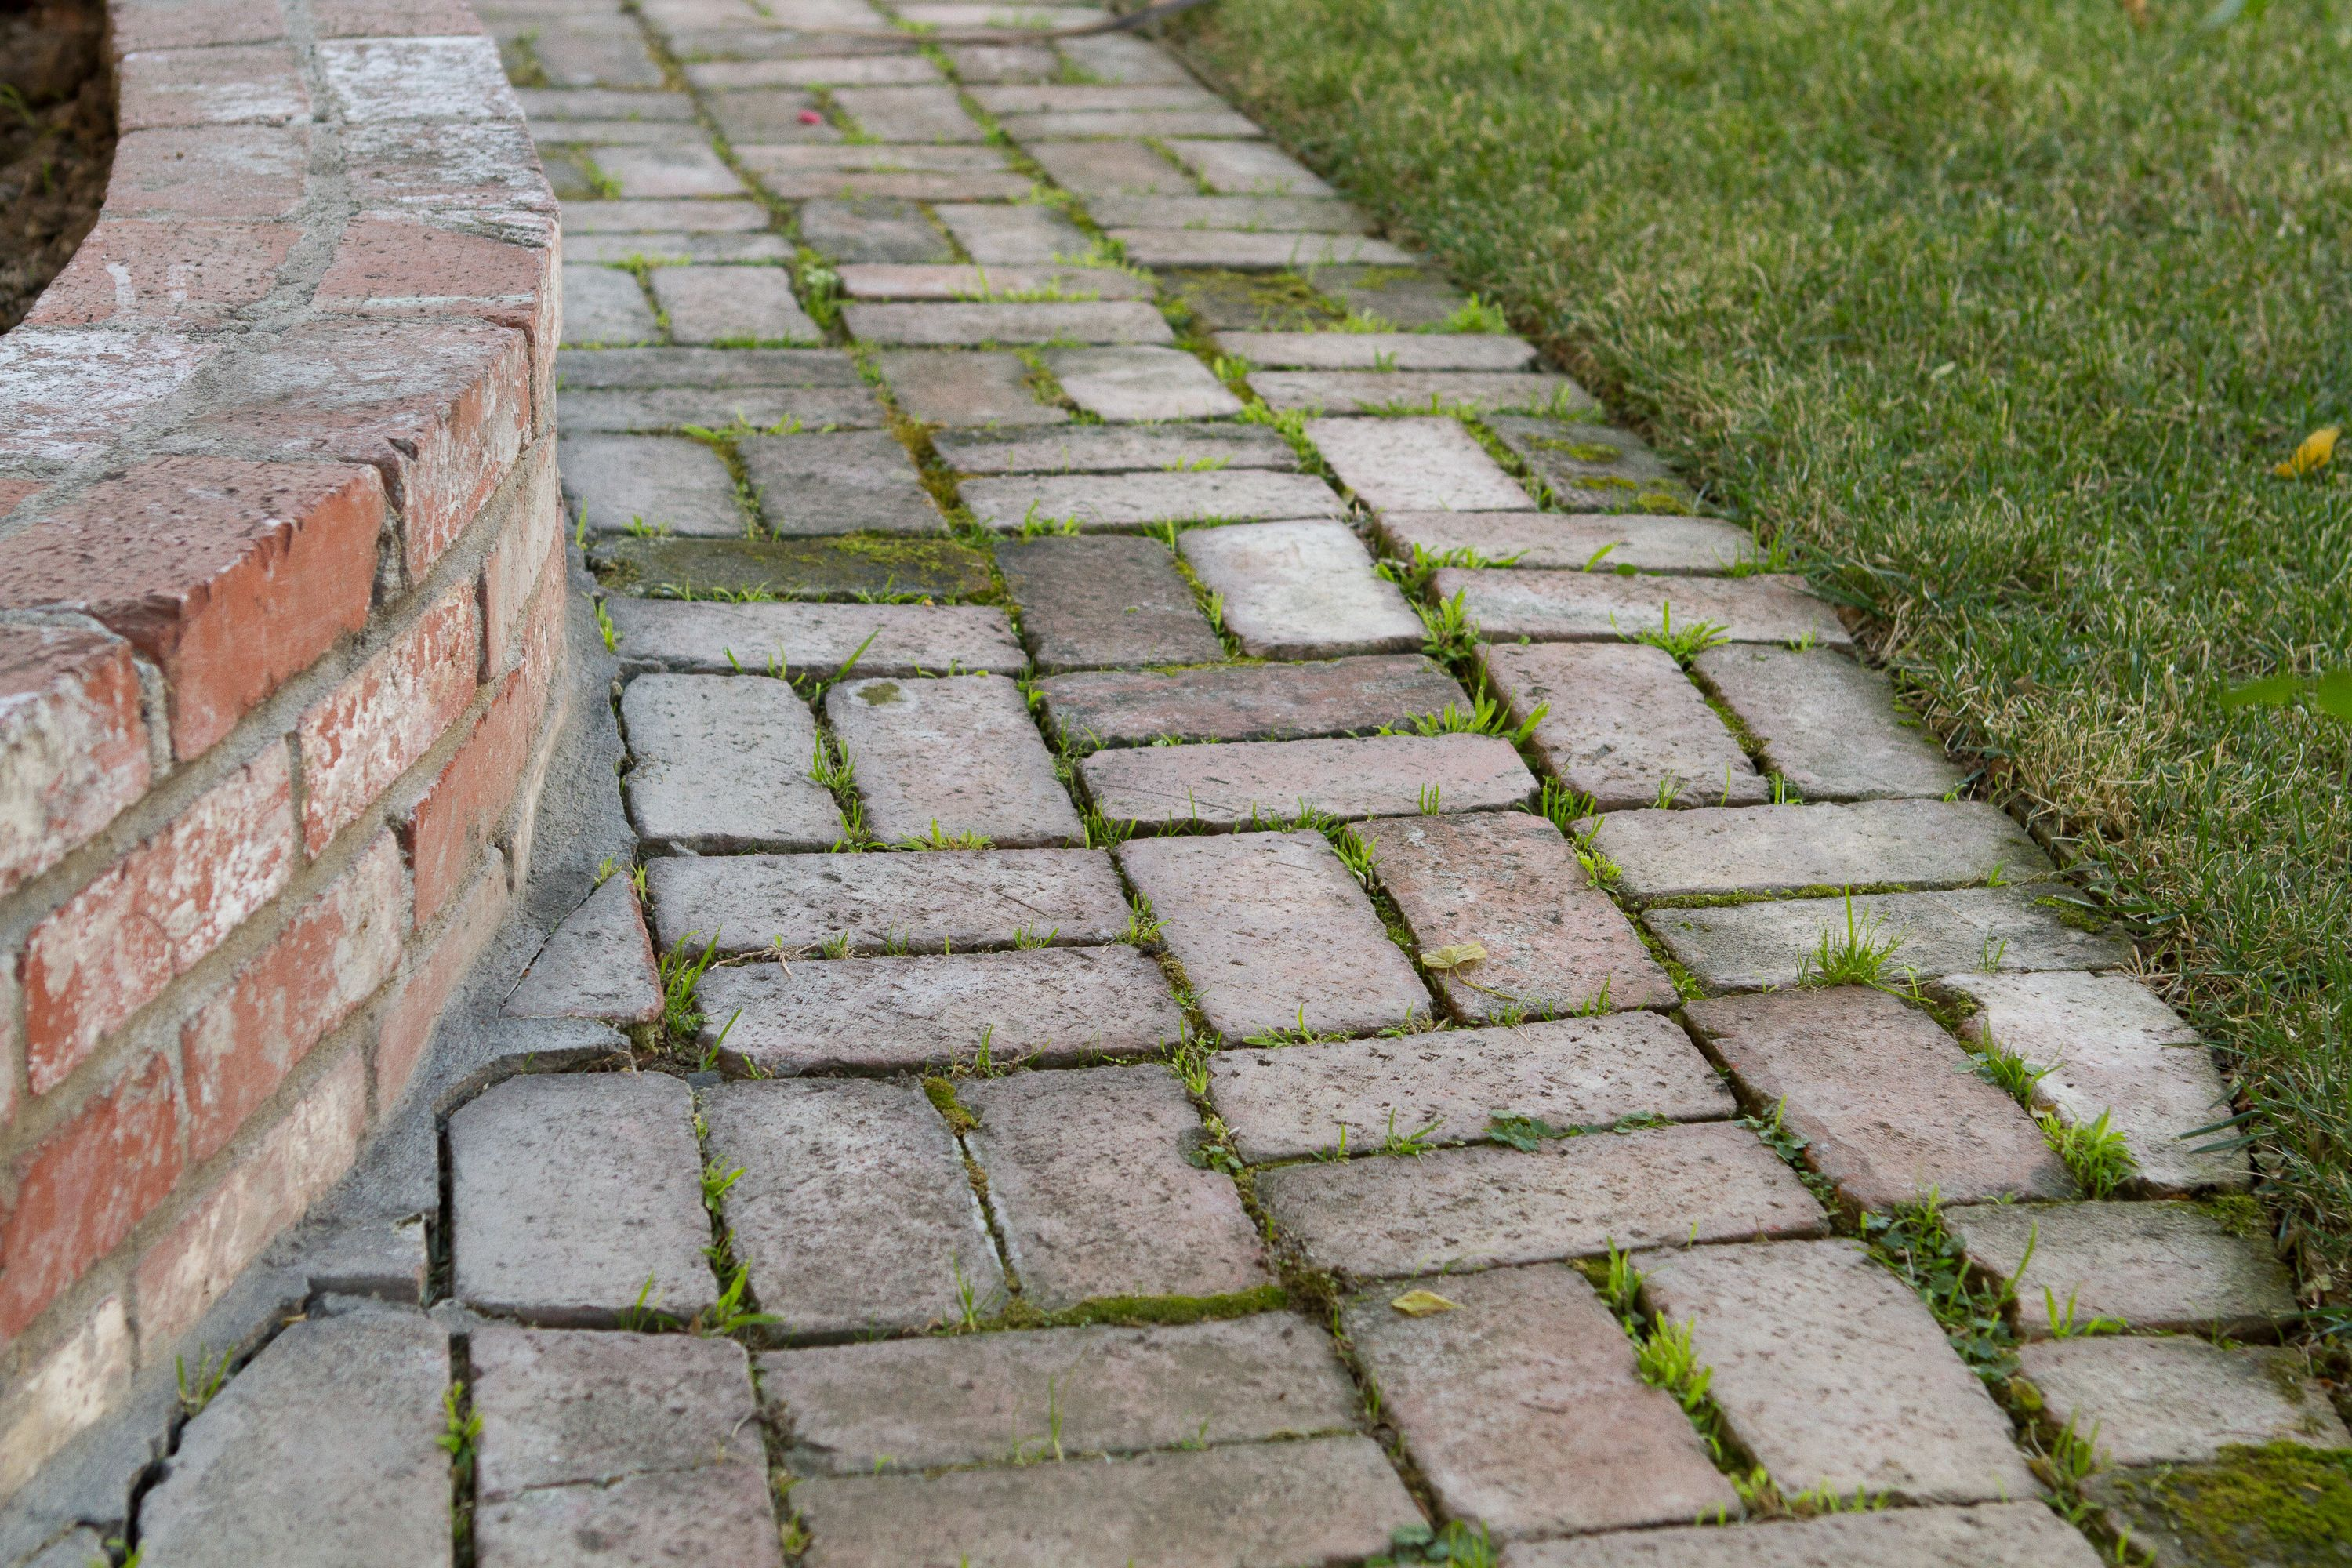 How to Remove Mold & Algae From Brick Pavers | Home Stuff ...